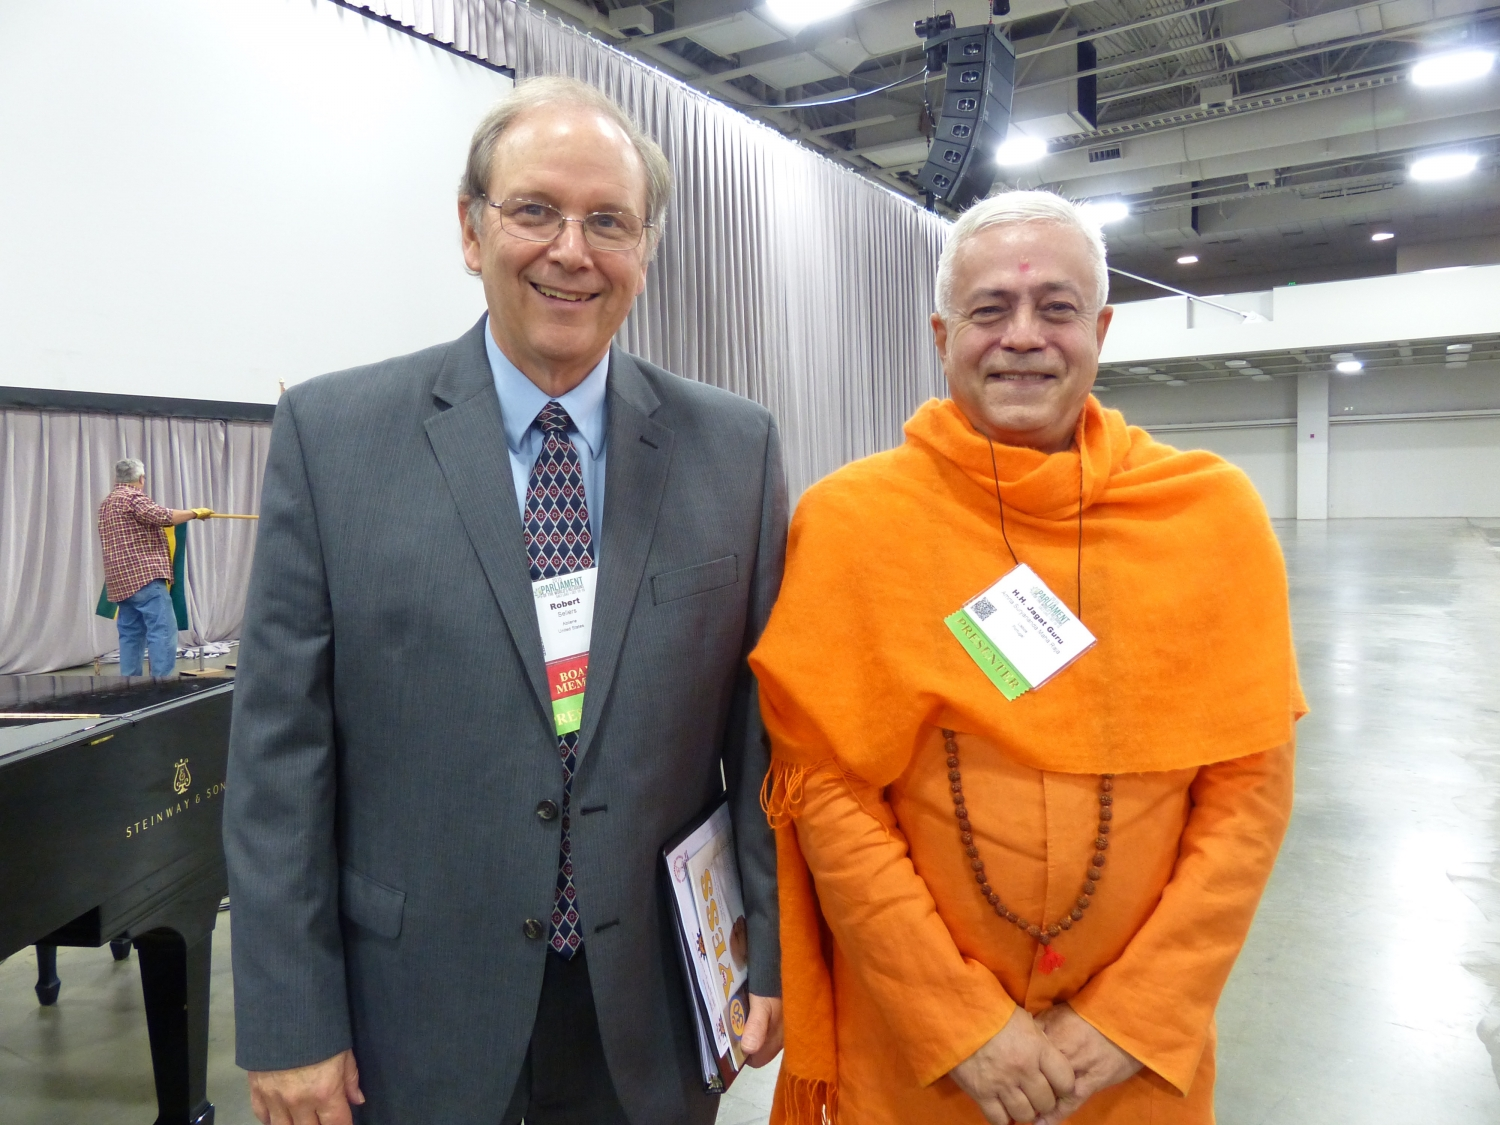 Com Robert Preston Sellers, prochain organisateur du Parliament of the World's Religions